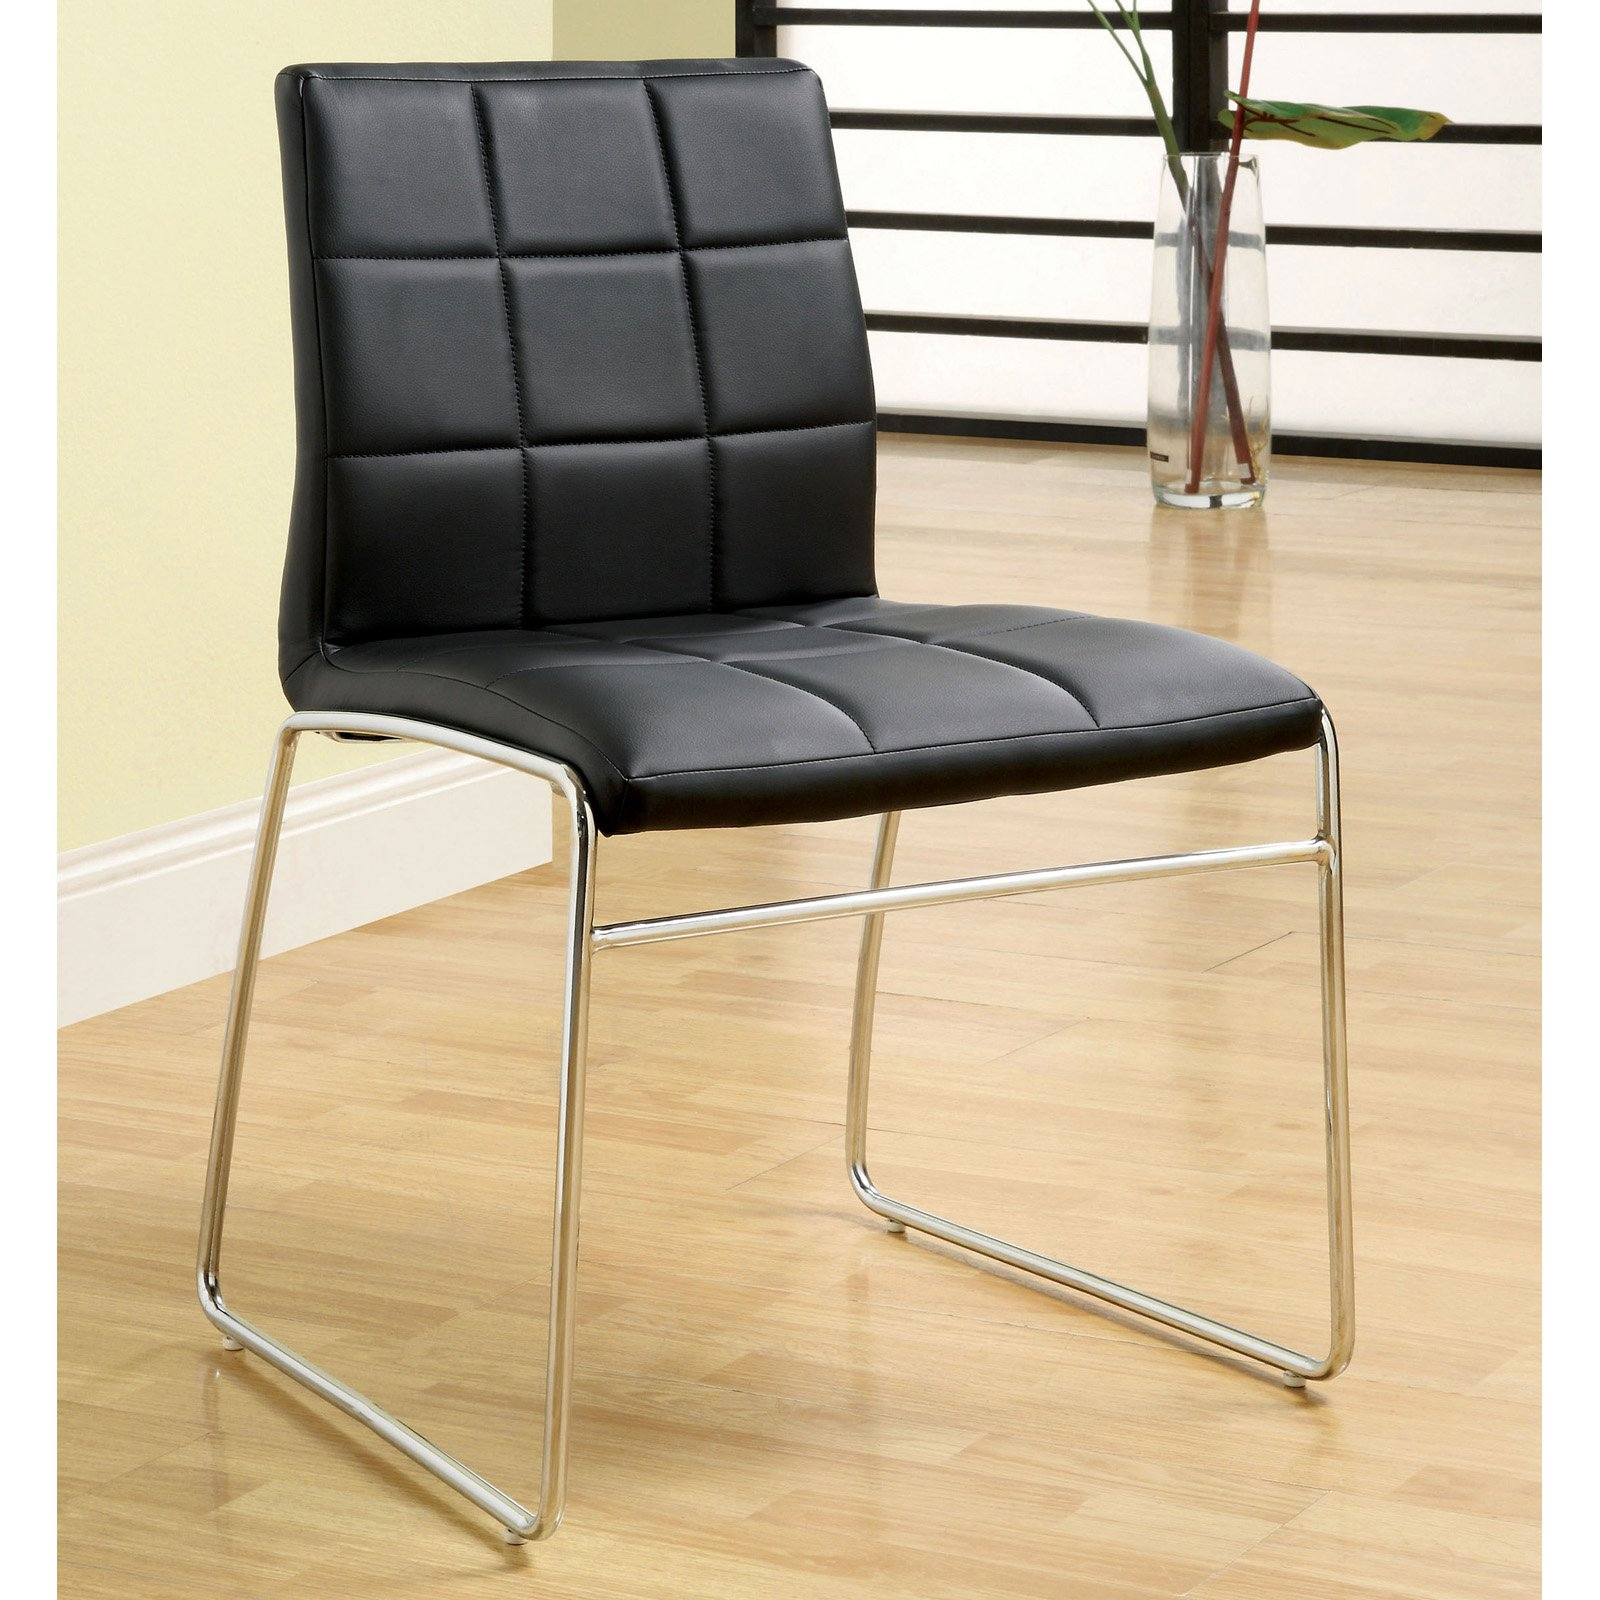 d057667c1e3a30 Furniture of America Bronzes Leatherette Dining Side Chairs - Set of 2 -  Walmart.com